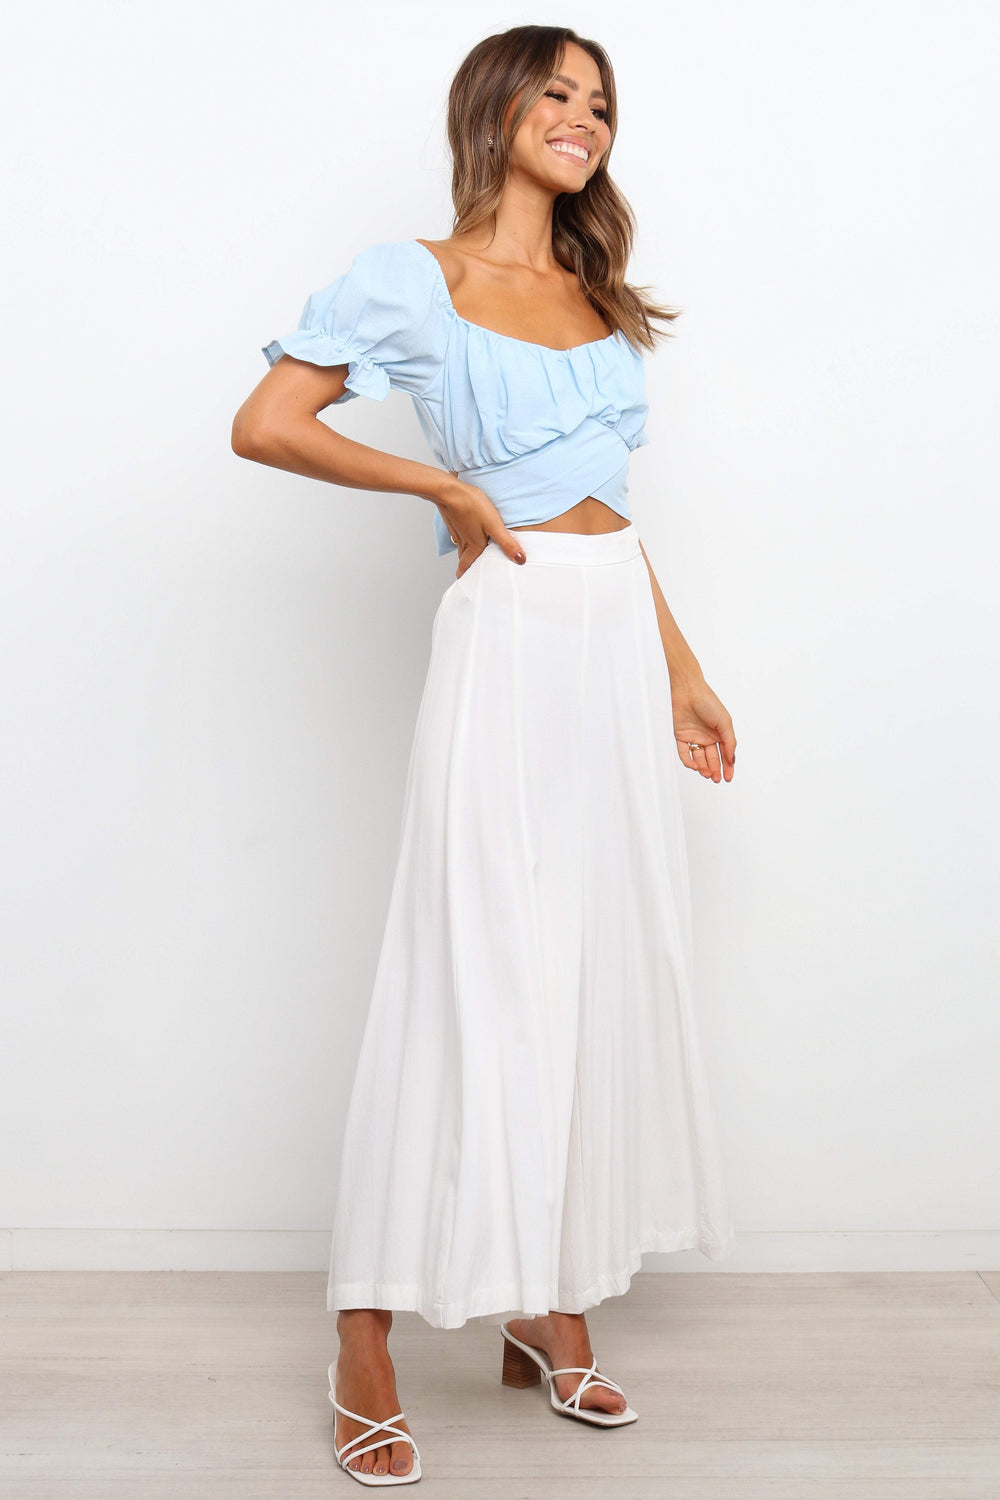 TOPS ***Sacchi Top - Light Blue